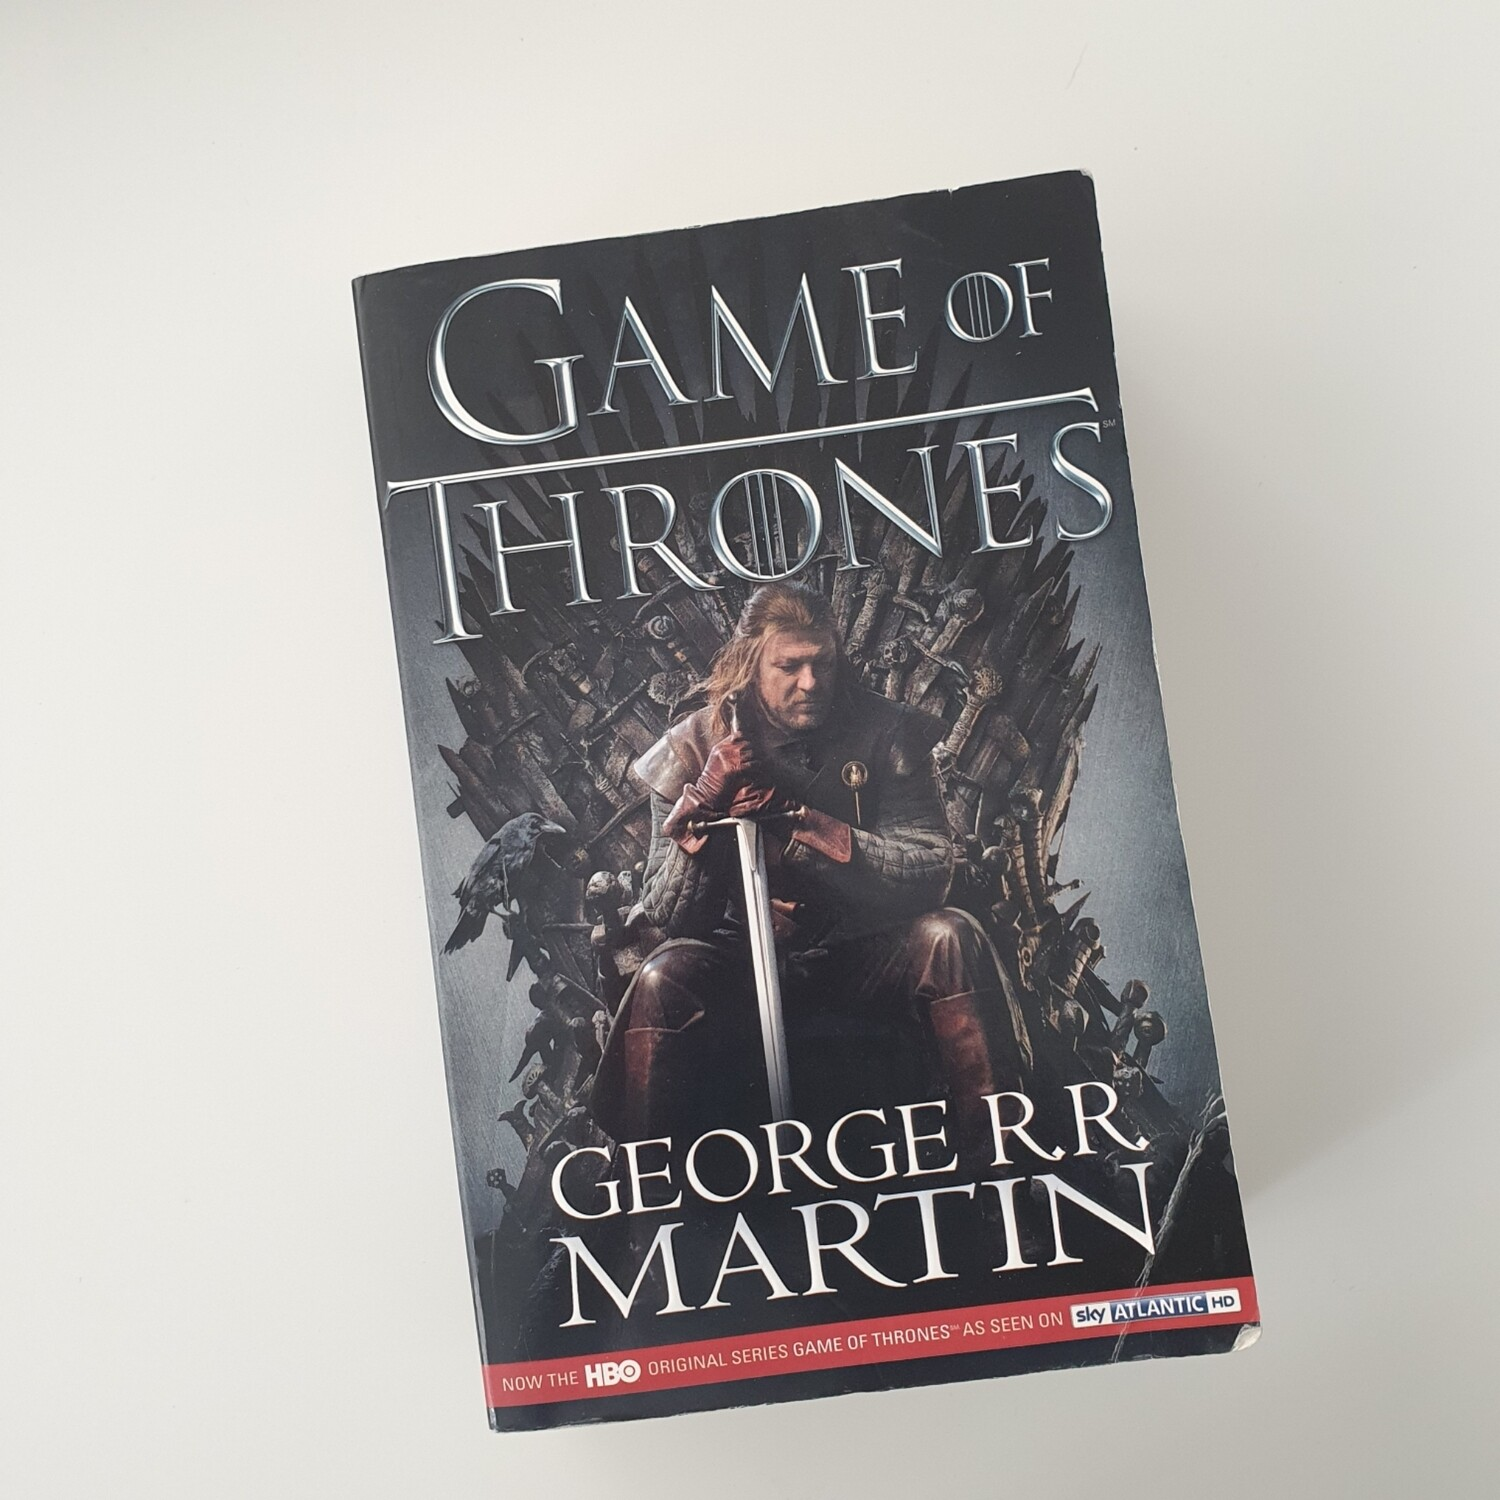 Game of Thrones Notebook - made from a paperback book